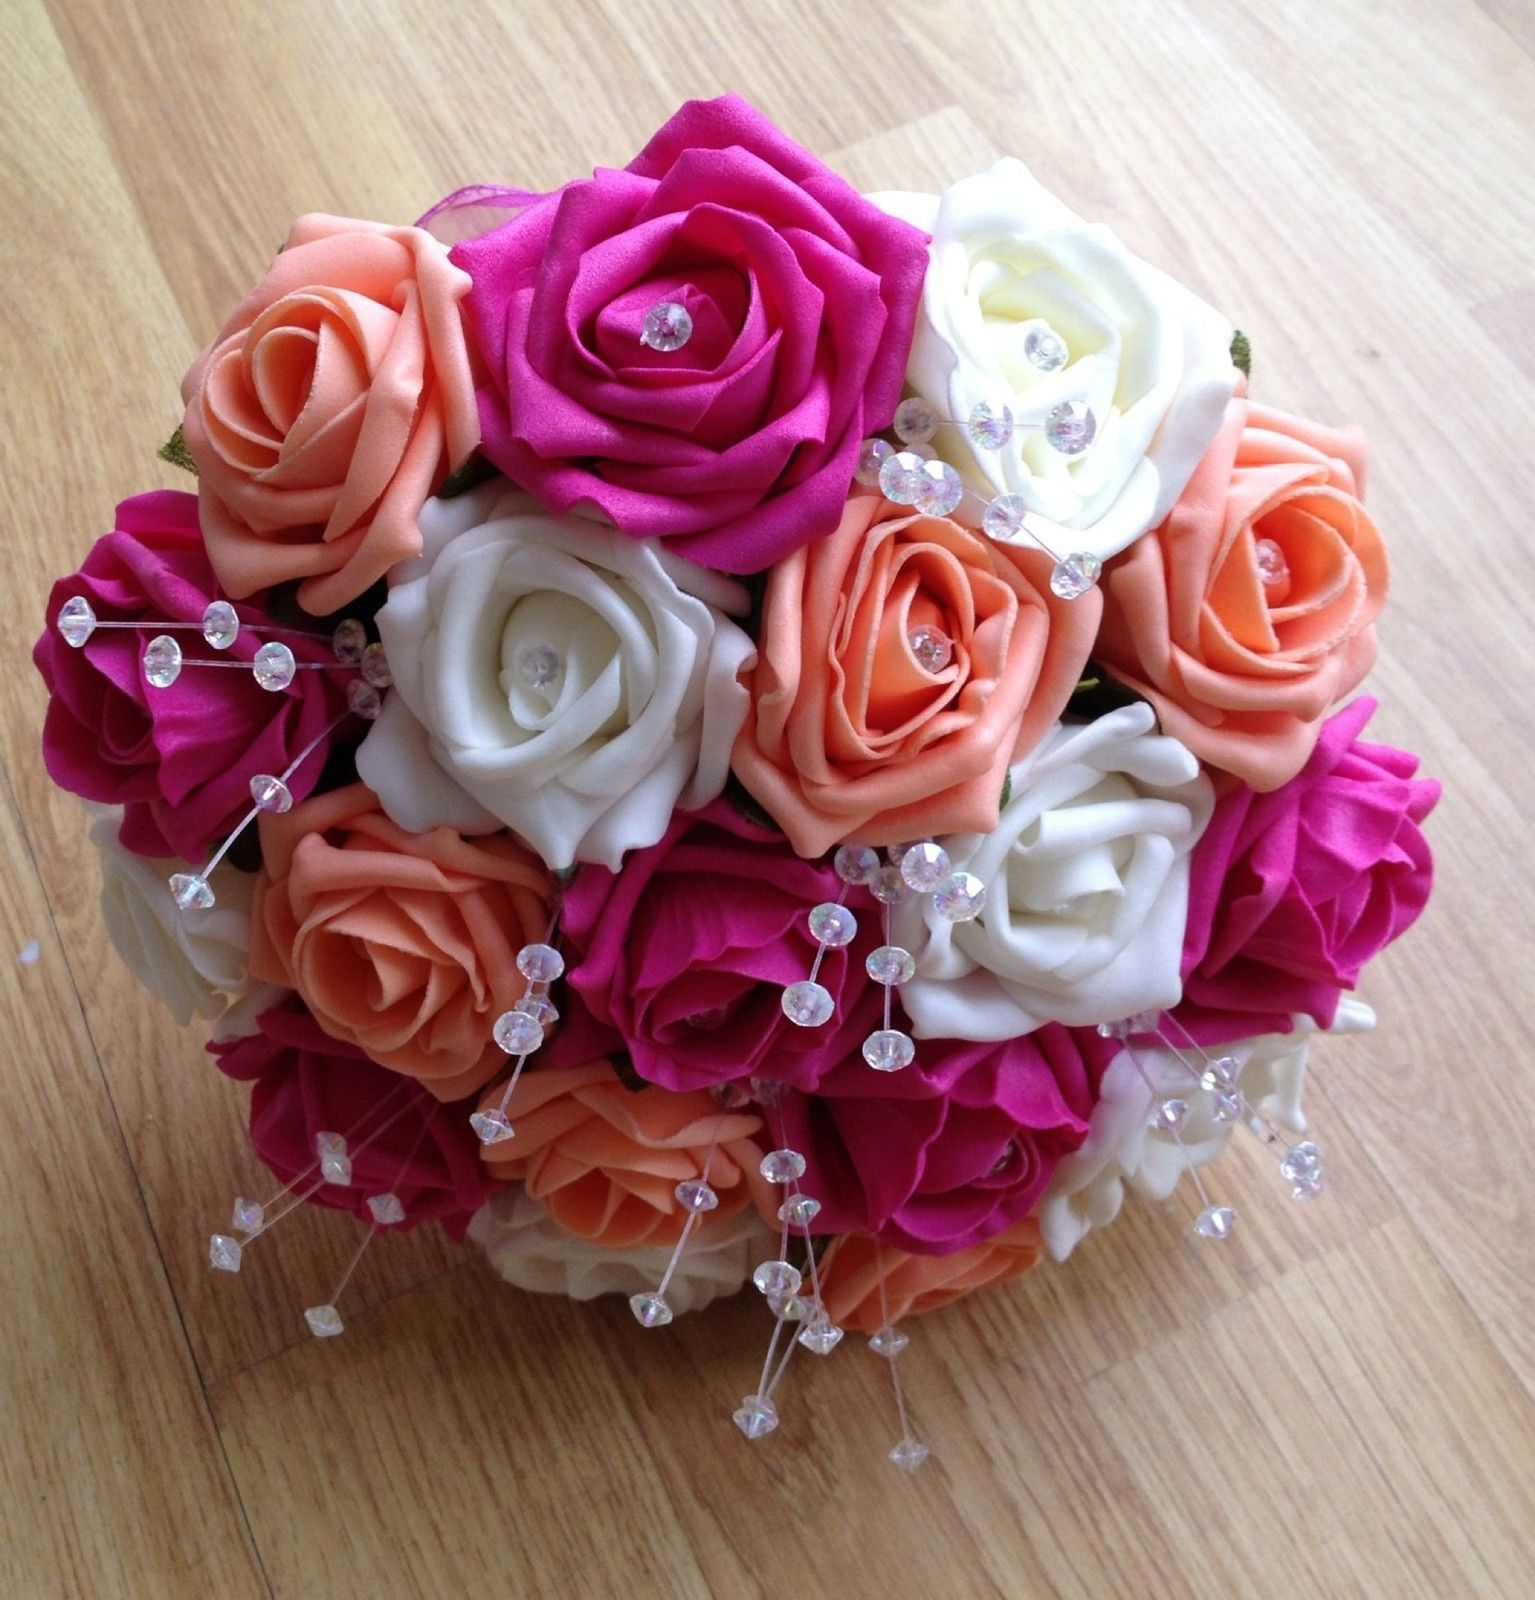 Artificial flowers ivory hot pink apricot foam rose wedding artificial flowers ivory hot pink apricot foam rose wedding bridesmaid bouquet izmirmasajfo